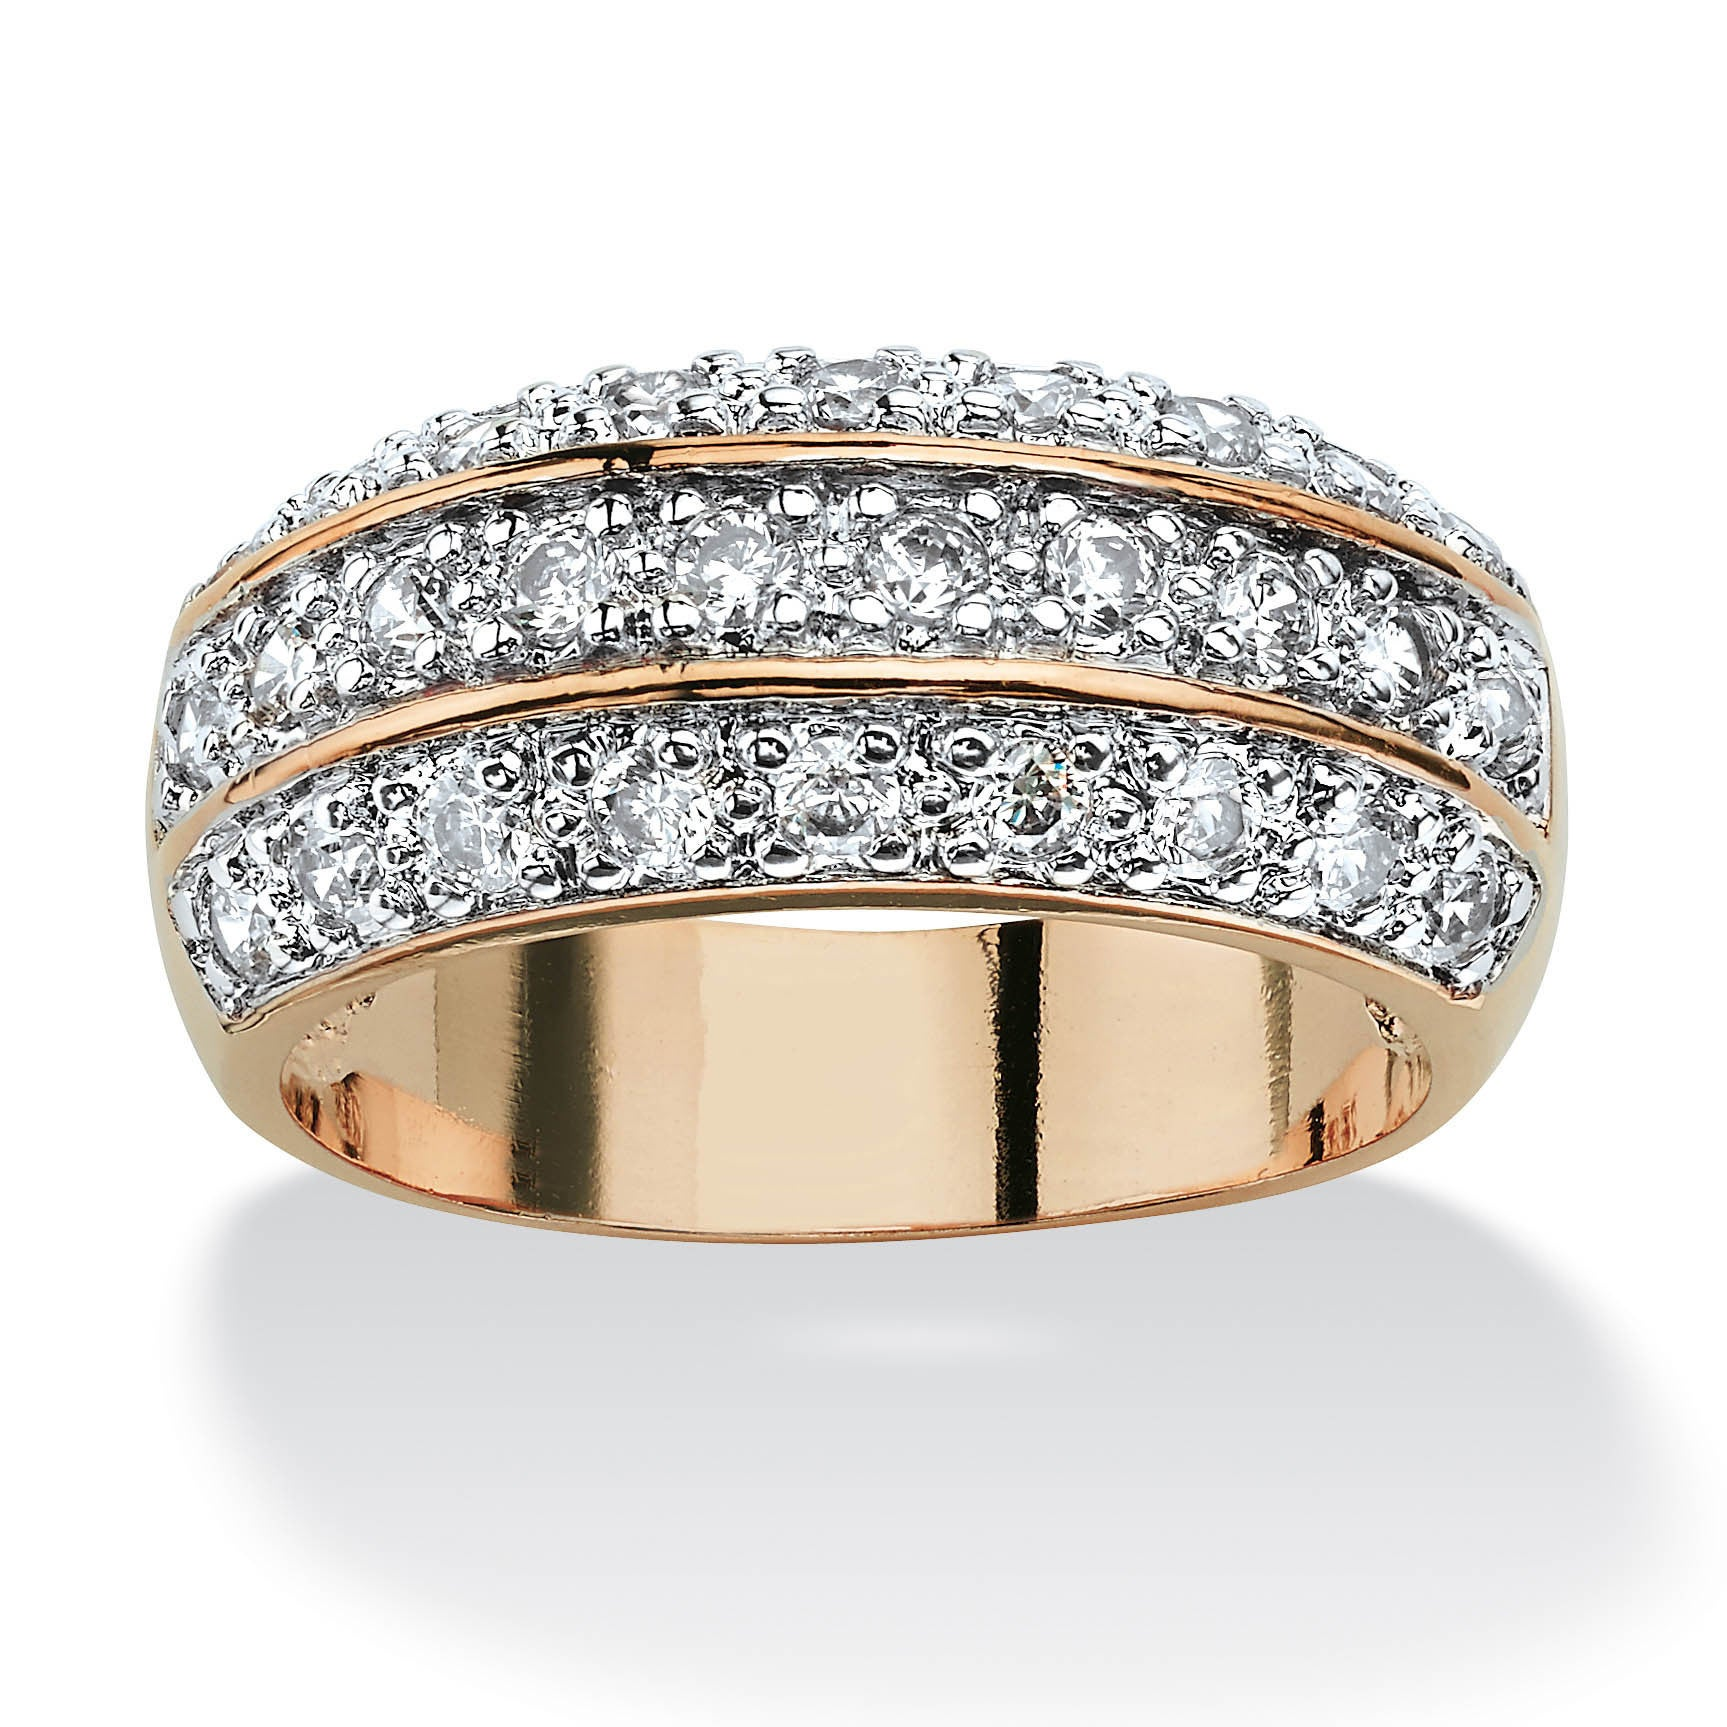 Ring Zircon Copper Plated 925 Silver Ring Birthday Gift Size : 9